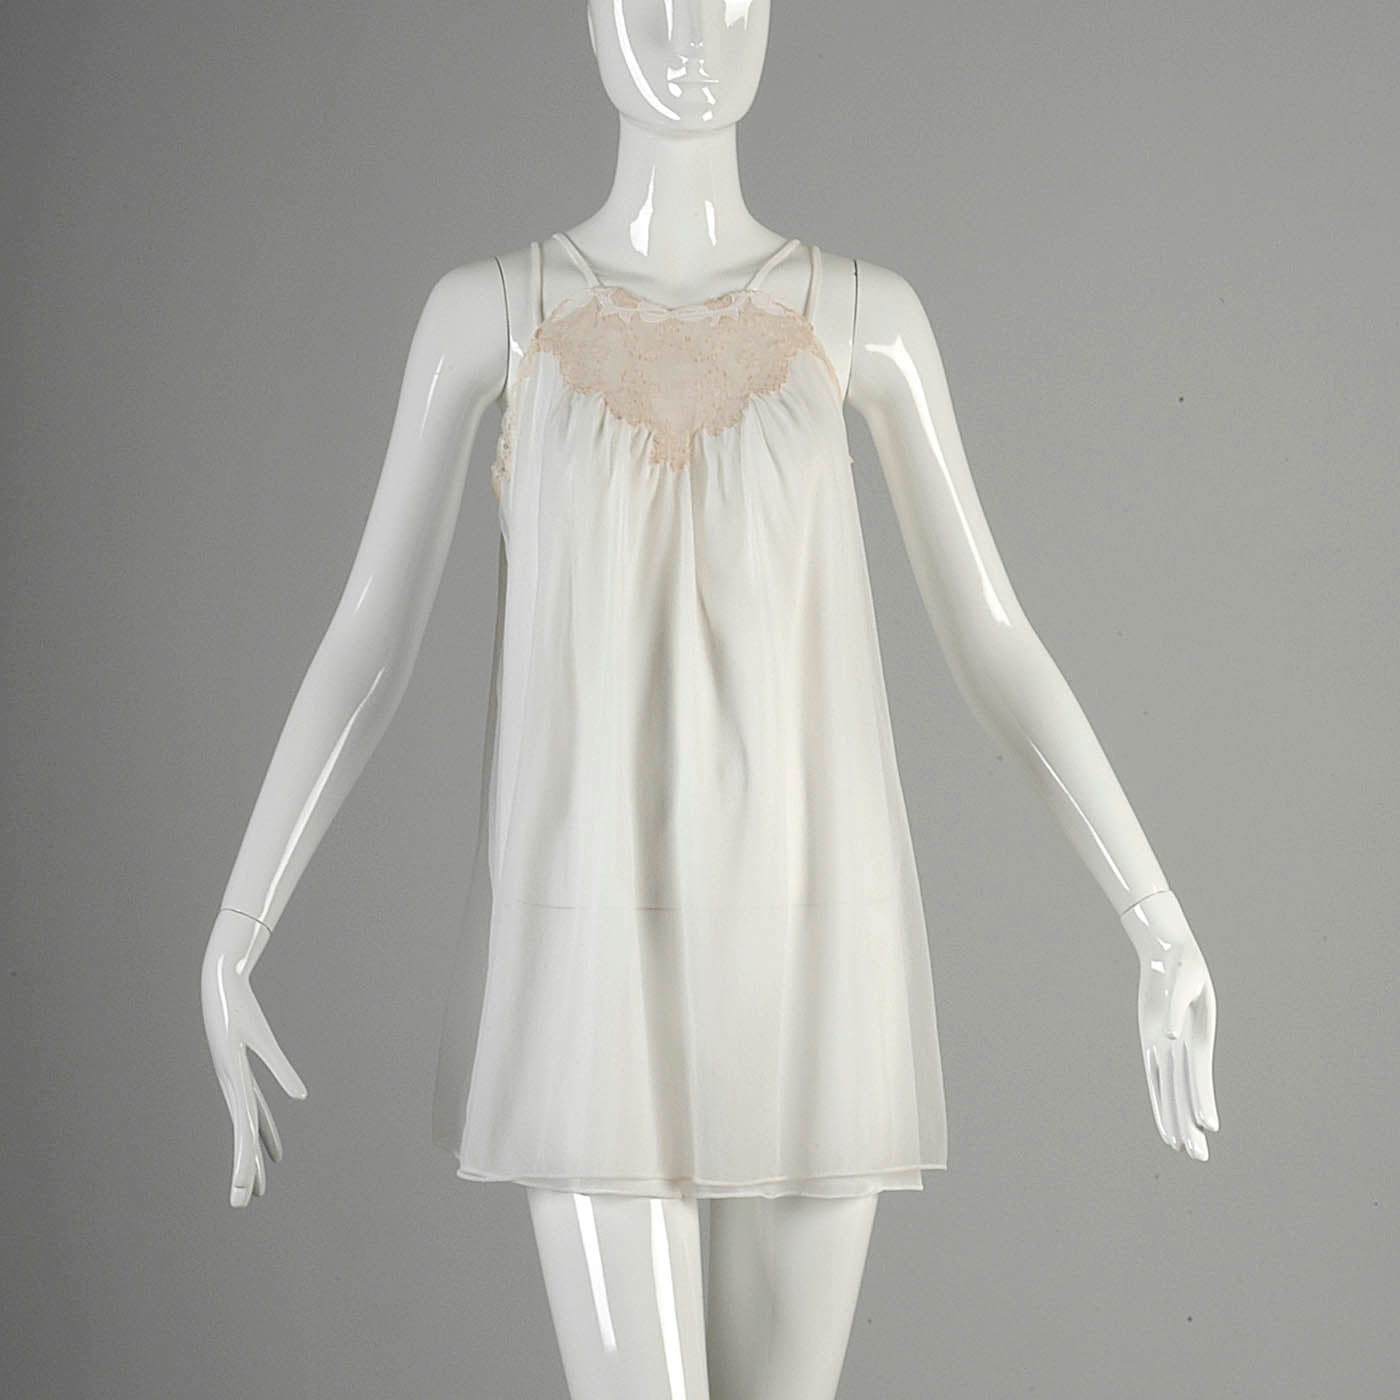 1960s White Babydoll Nightgown with Matching Peignoir